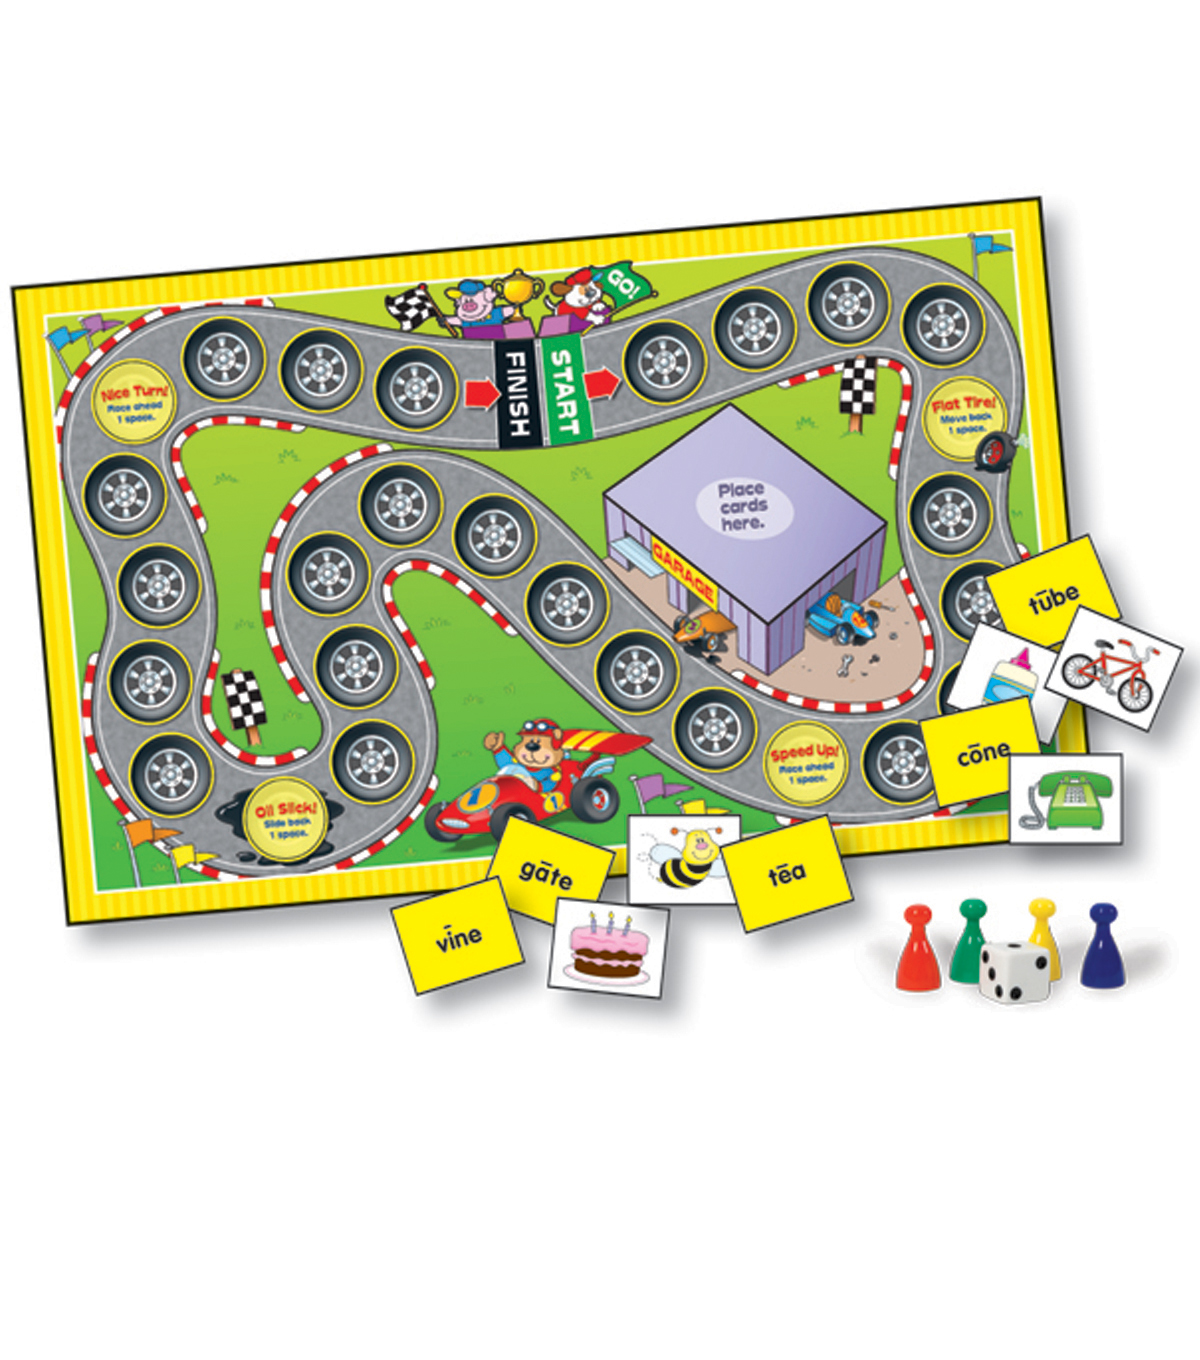 Language Arts Learning Games Board Game- Grade 1 | JOANN